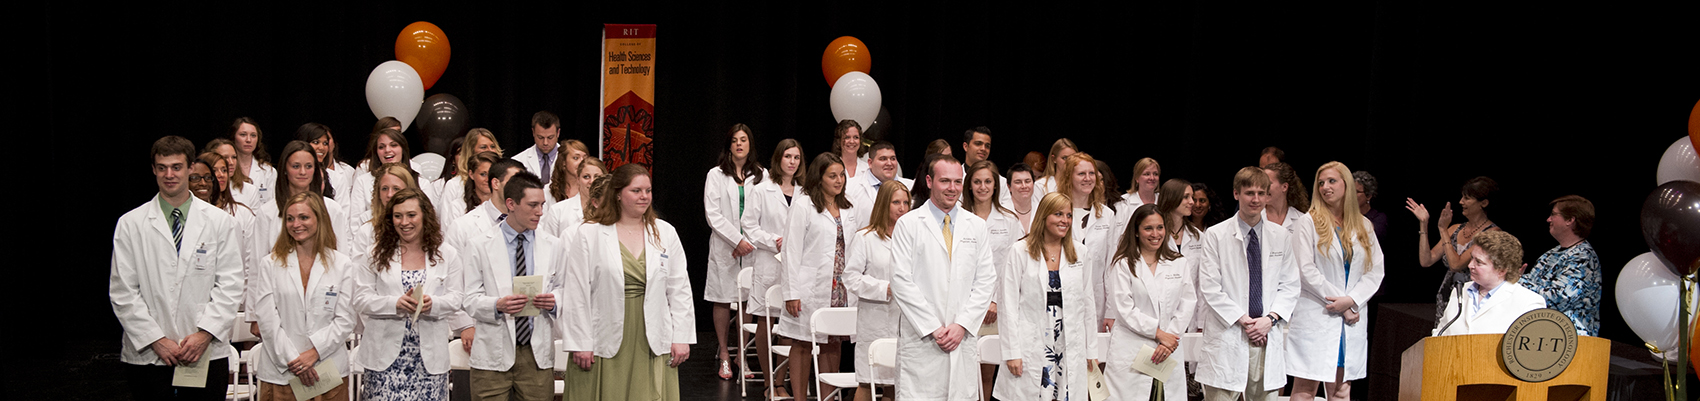 Health Science and Technology graduates standing with white lab coats